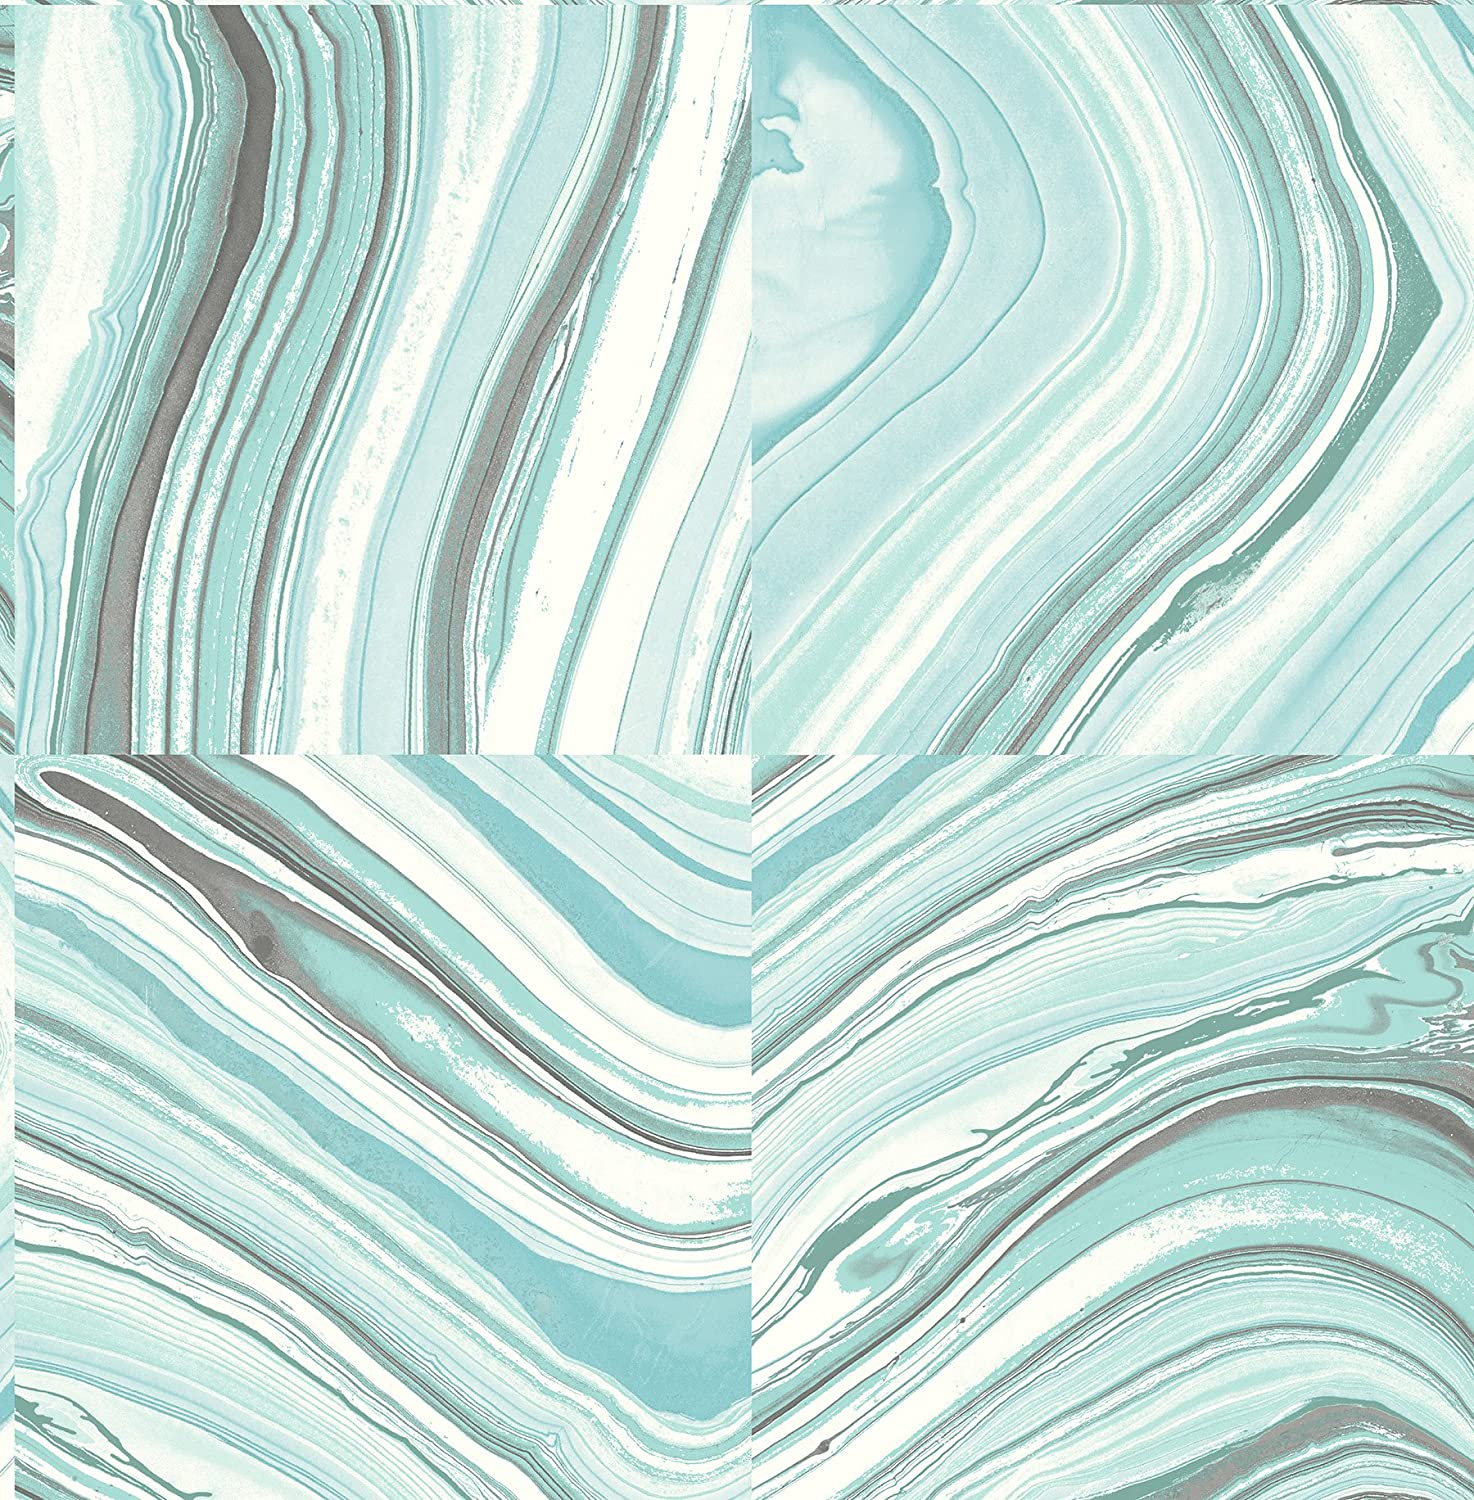 Great Wallpaper Marble Turquoise - 91%2BBYCcFKzL  Pic_82683.jpg